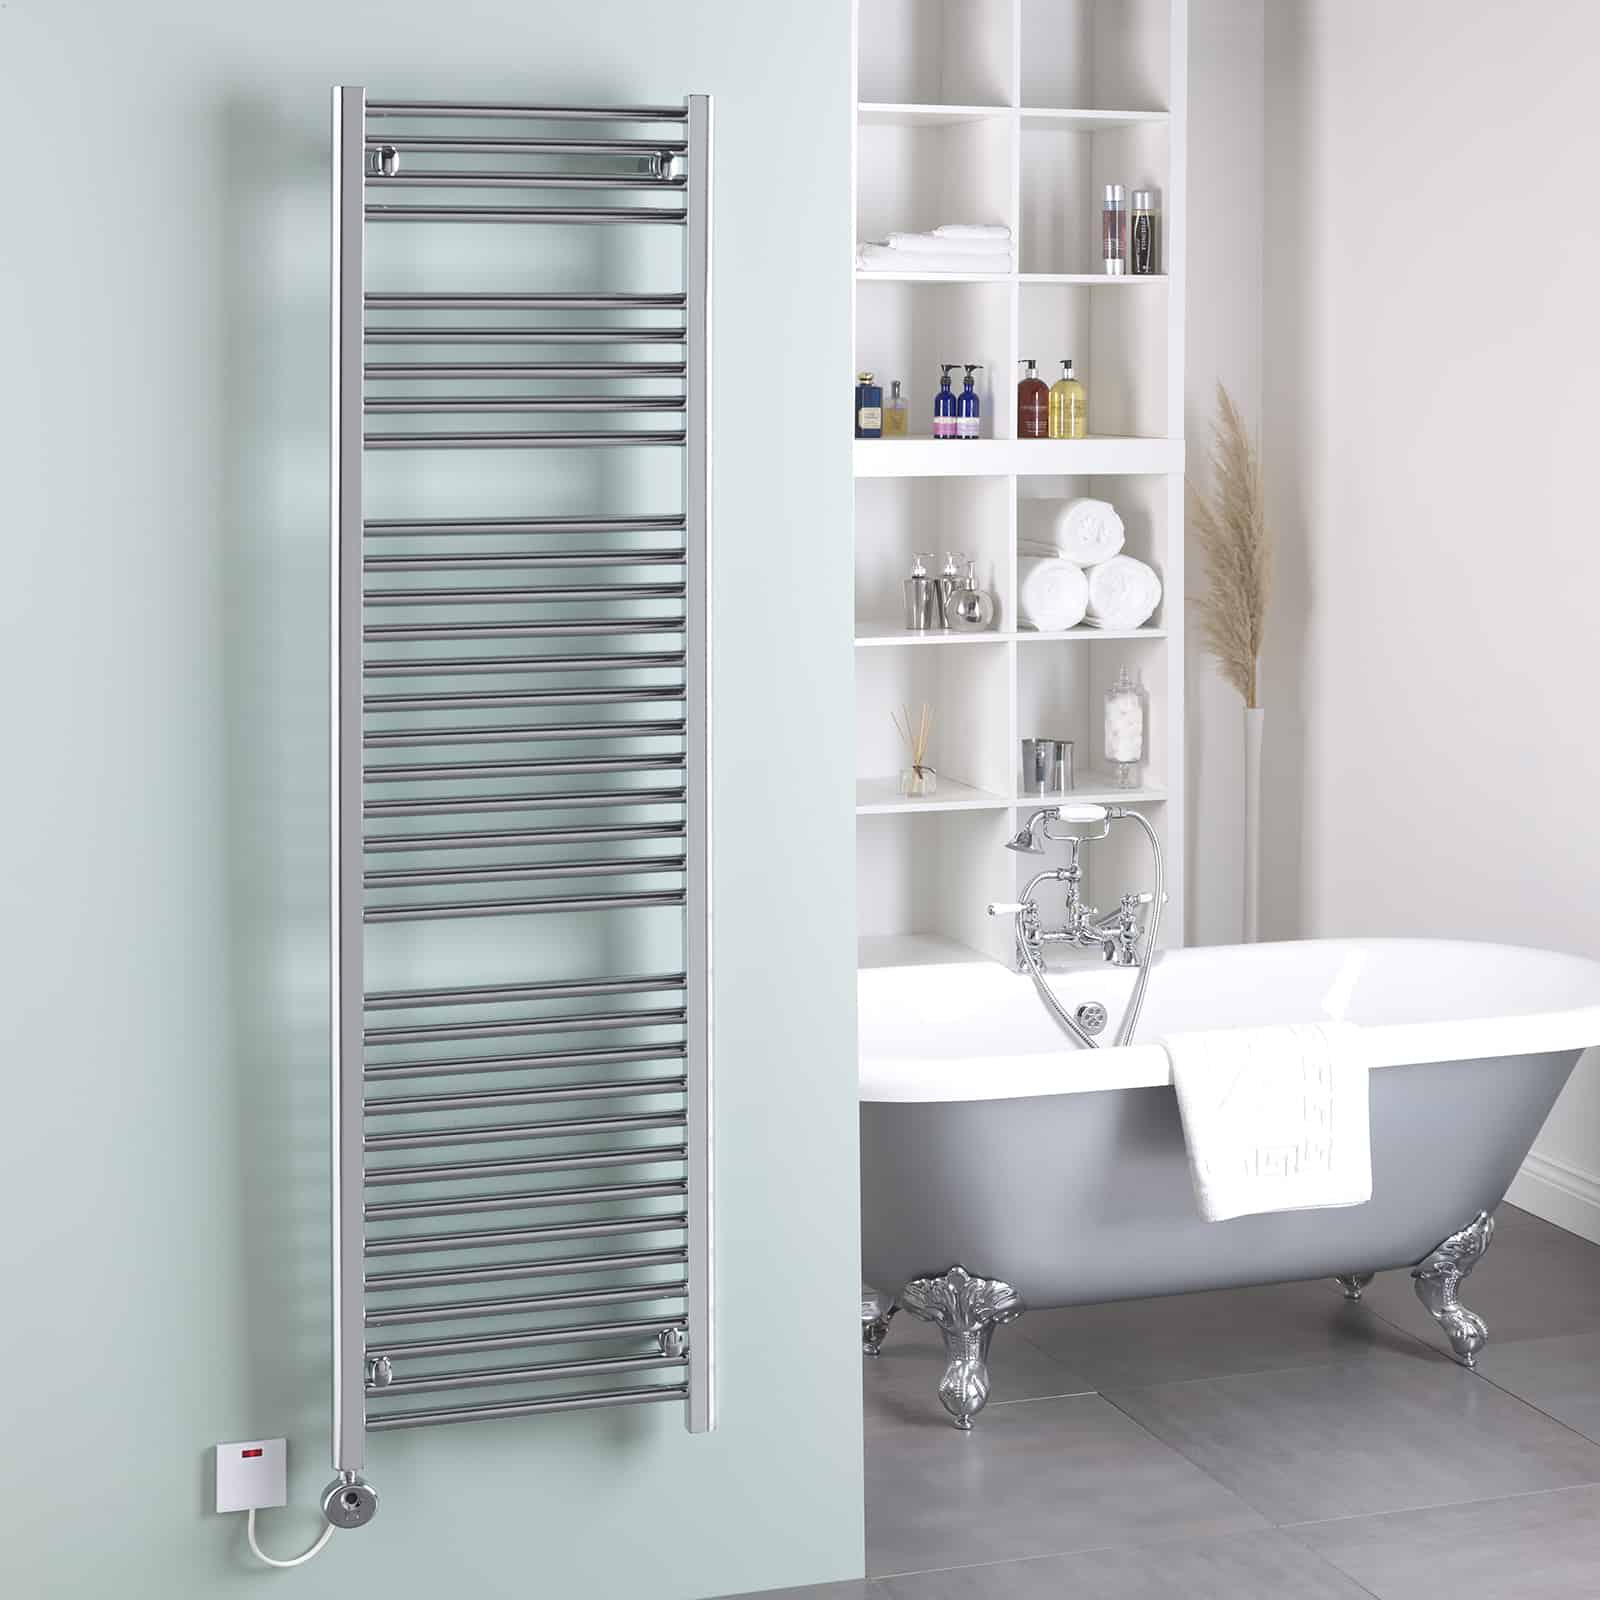 how to use electric towel rail